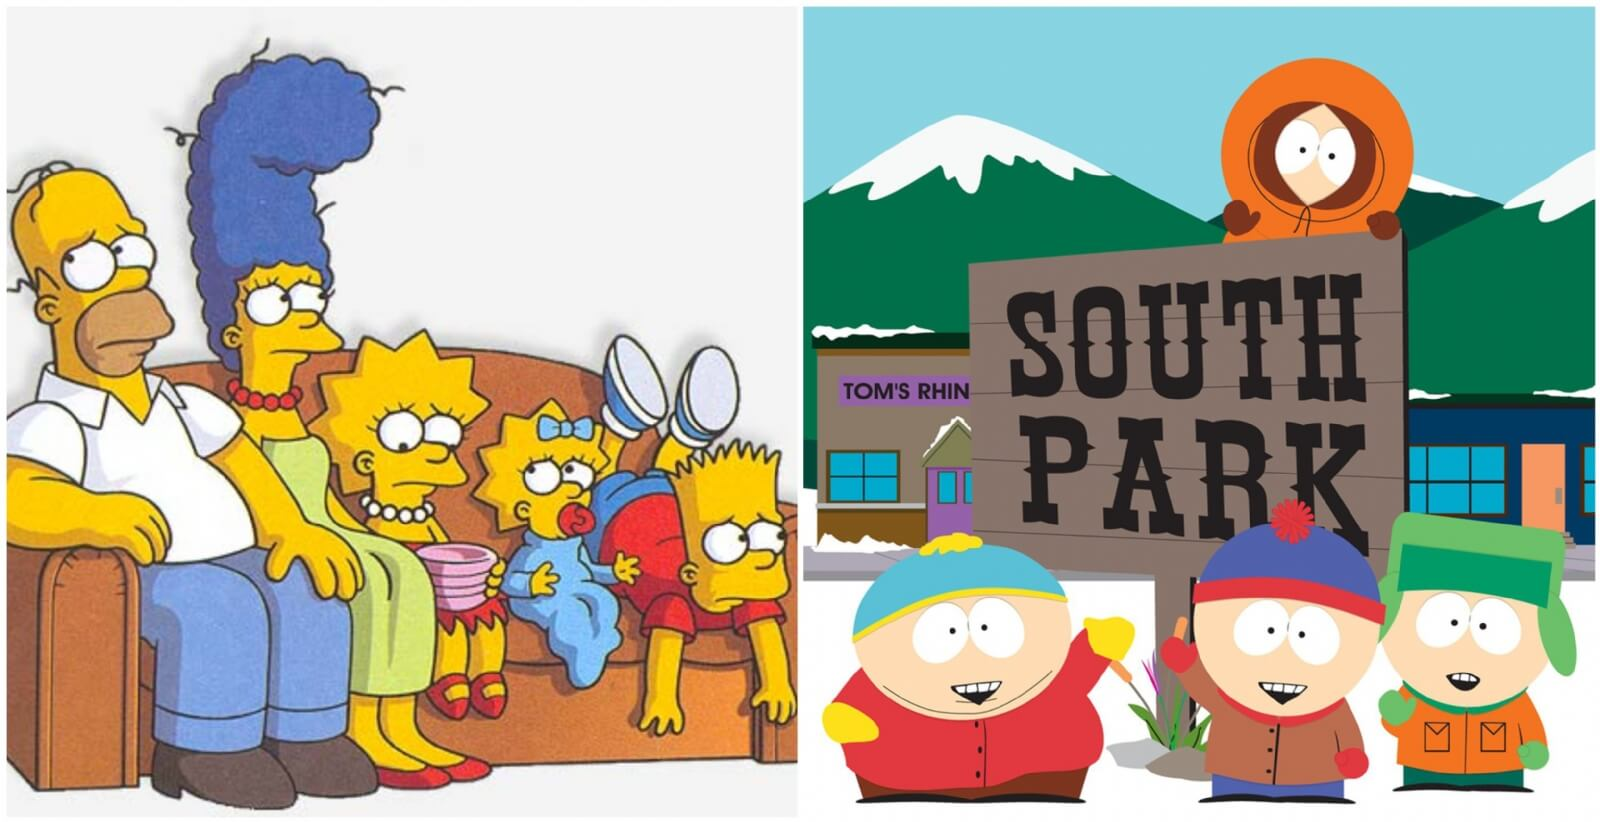 The Simpsons / South Park